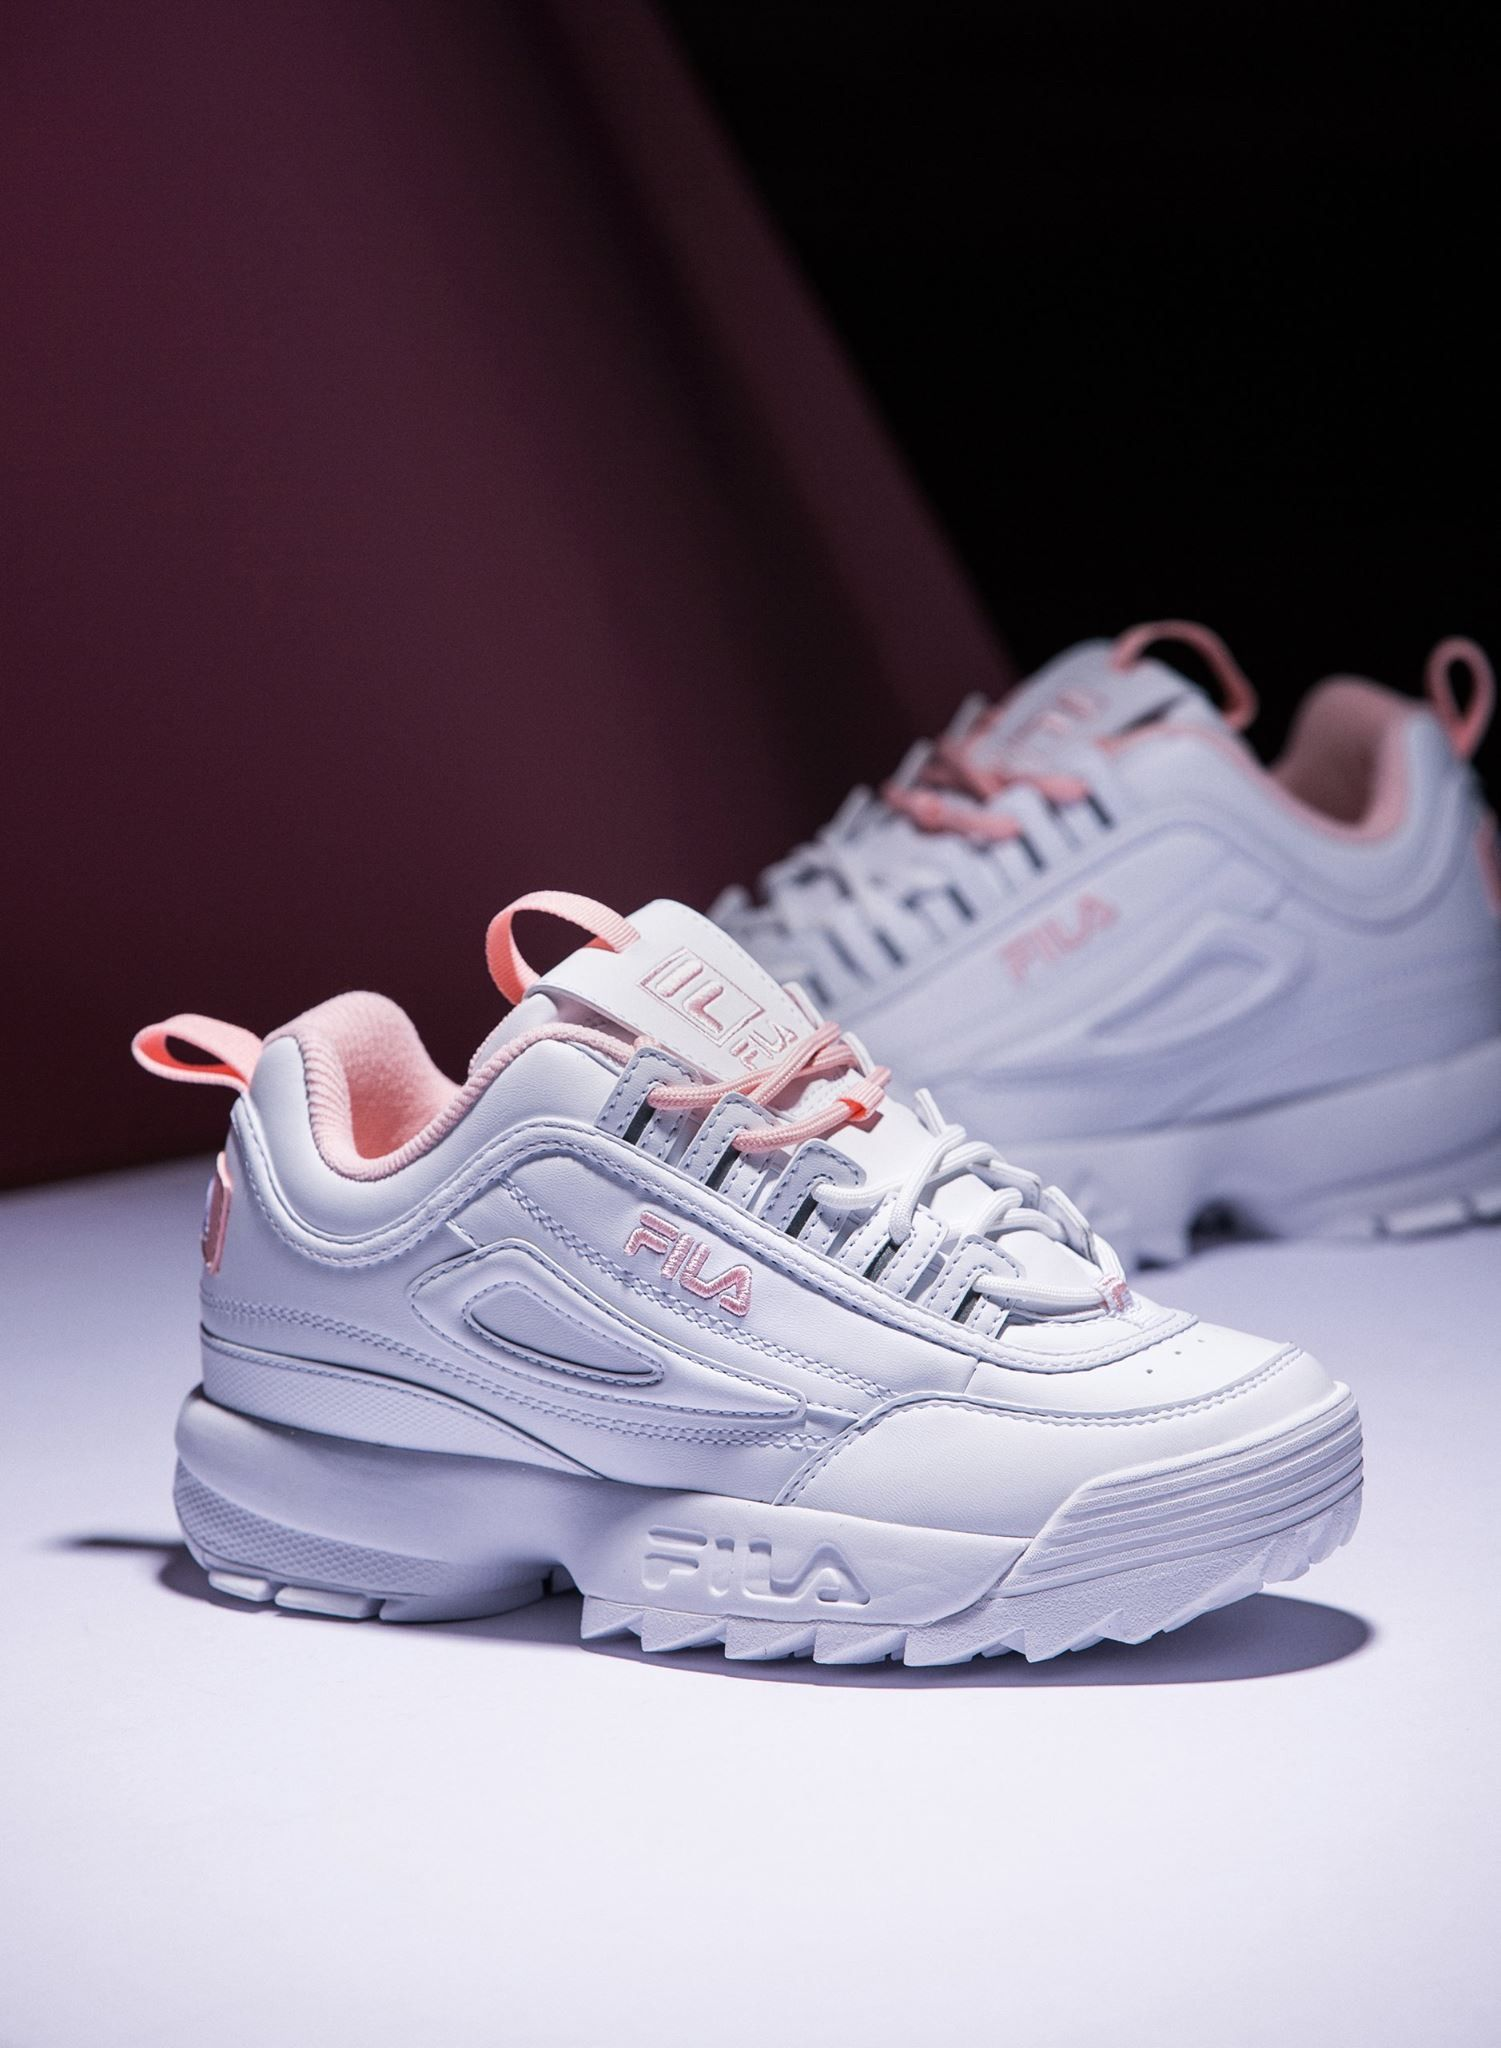 FILA #shoes #sneaker #style #running #white #pink nel 2019 ...